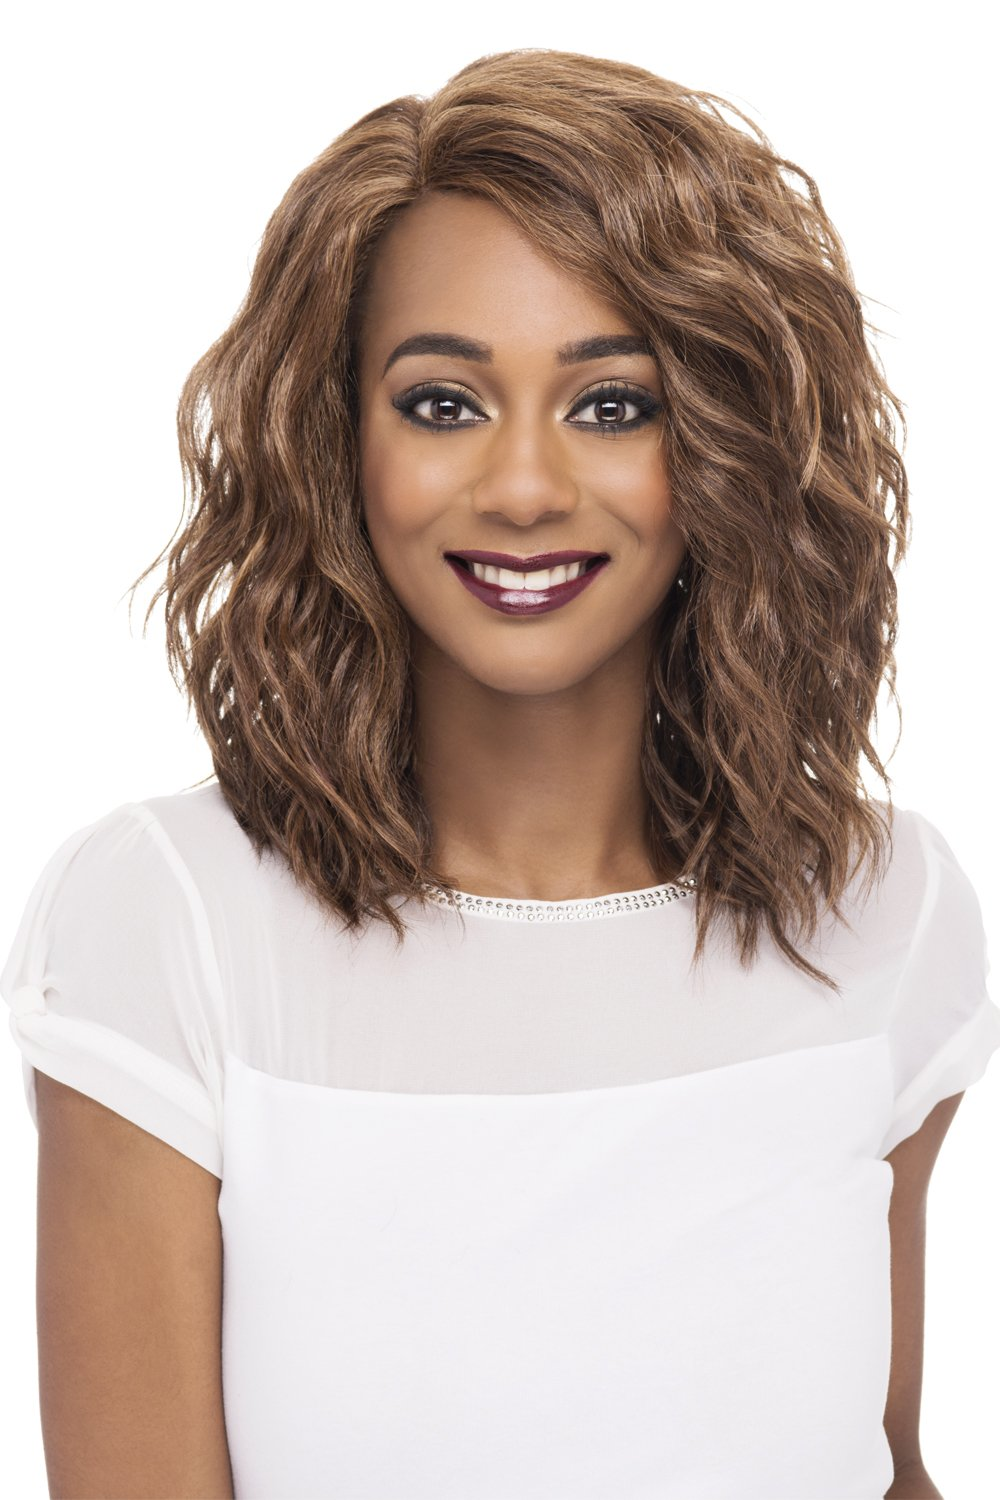 Vivica A Fox Hair Collection Finn - Natural Baby Lace Front Wig, New Futura Hair In Color, P4/27/30, 4.7 Ounce